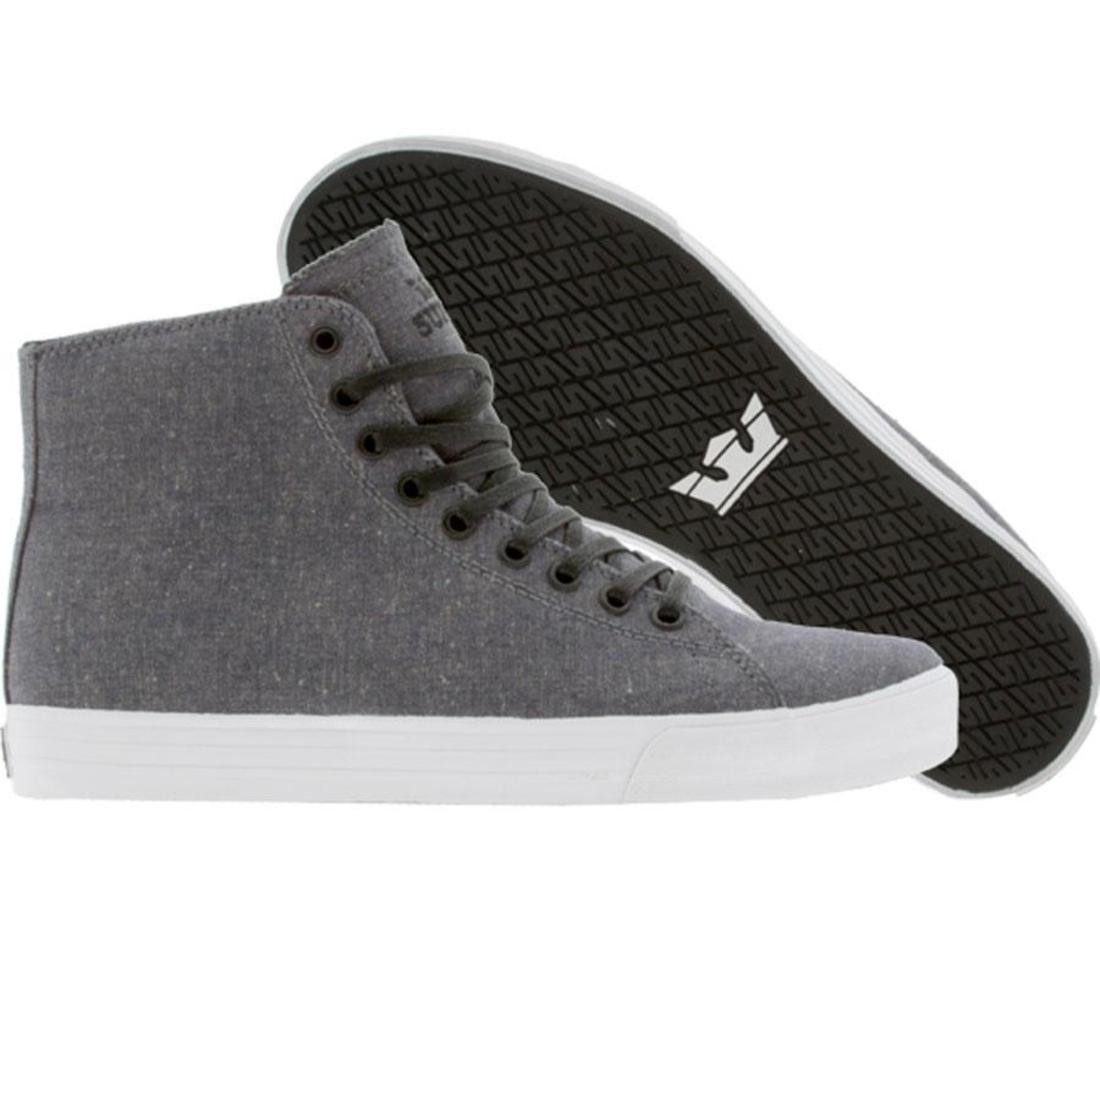 SUPRA サンダー ハイトップ スニーカー メンズ 【 Thunder Hightop (navy Chambray) 】 Navy Chambray